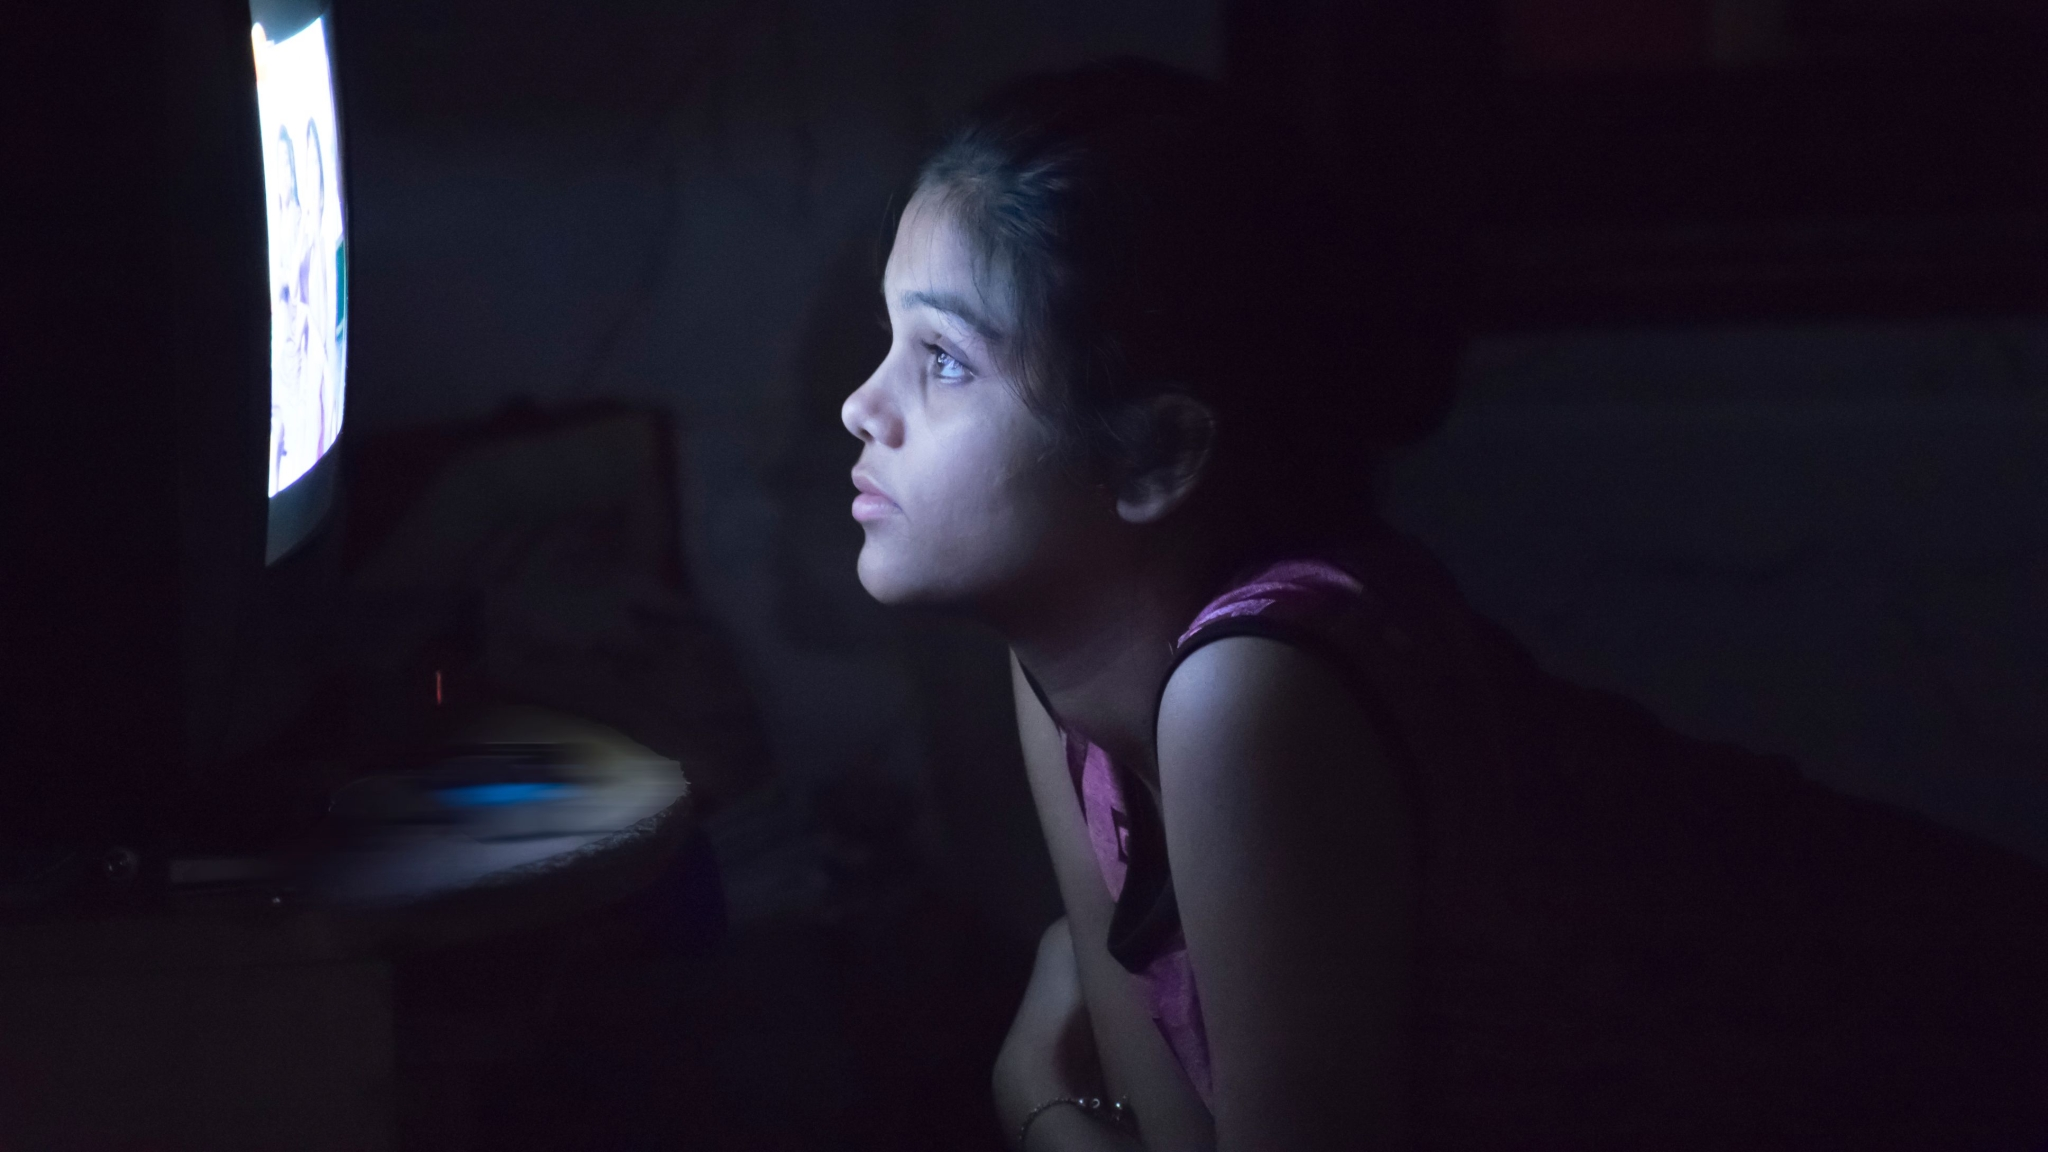 Young Kids Who Watch More TV Get Less Sleep: Study